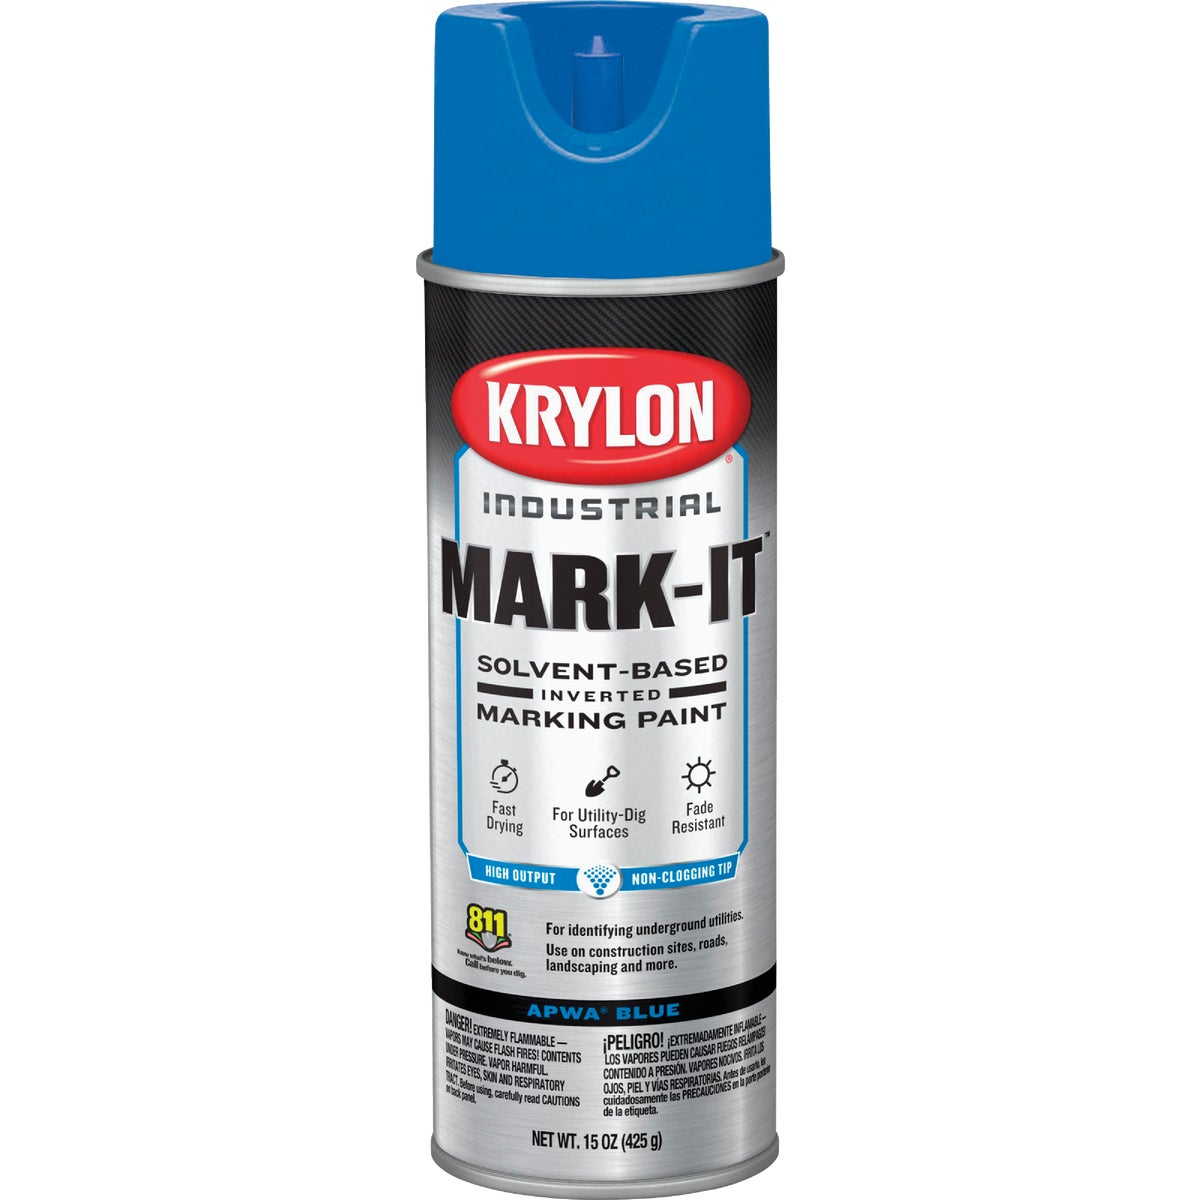 APWA BLUE MARKING PAINT - 7303 by Krylon/consumer Div